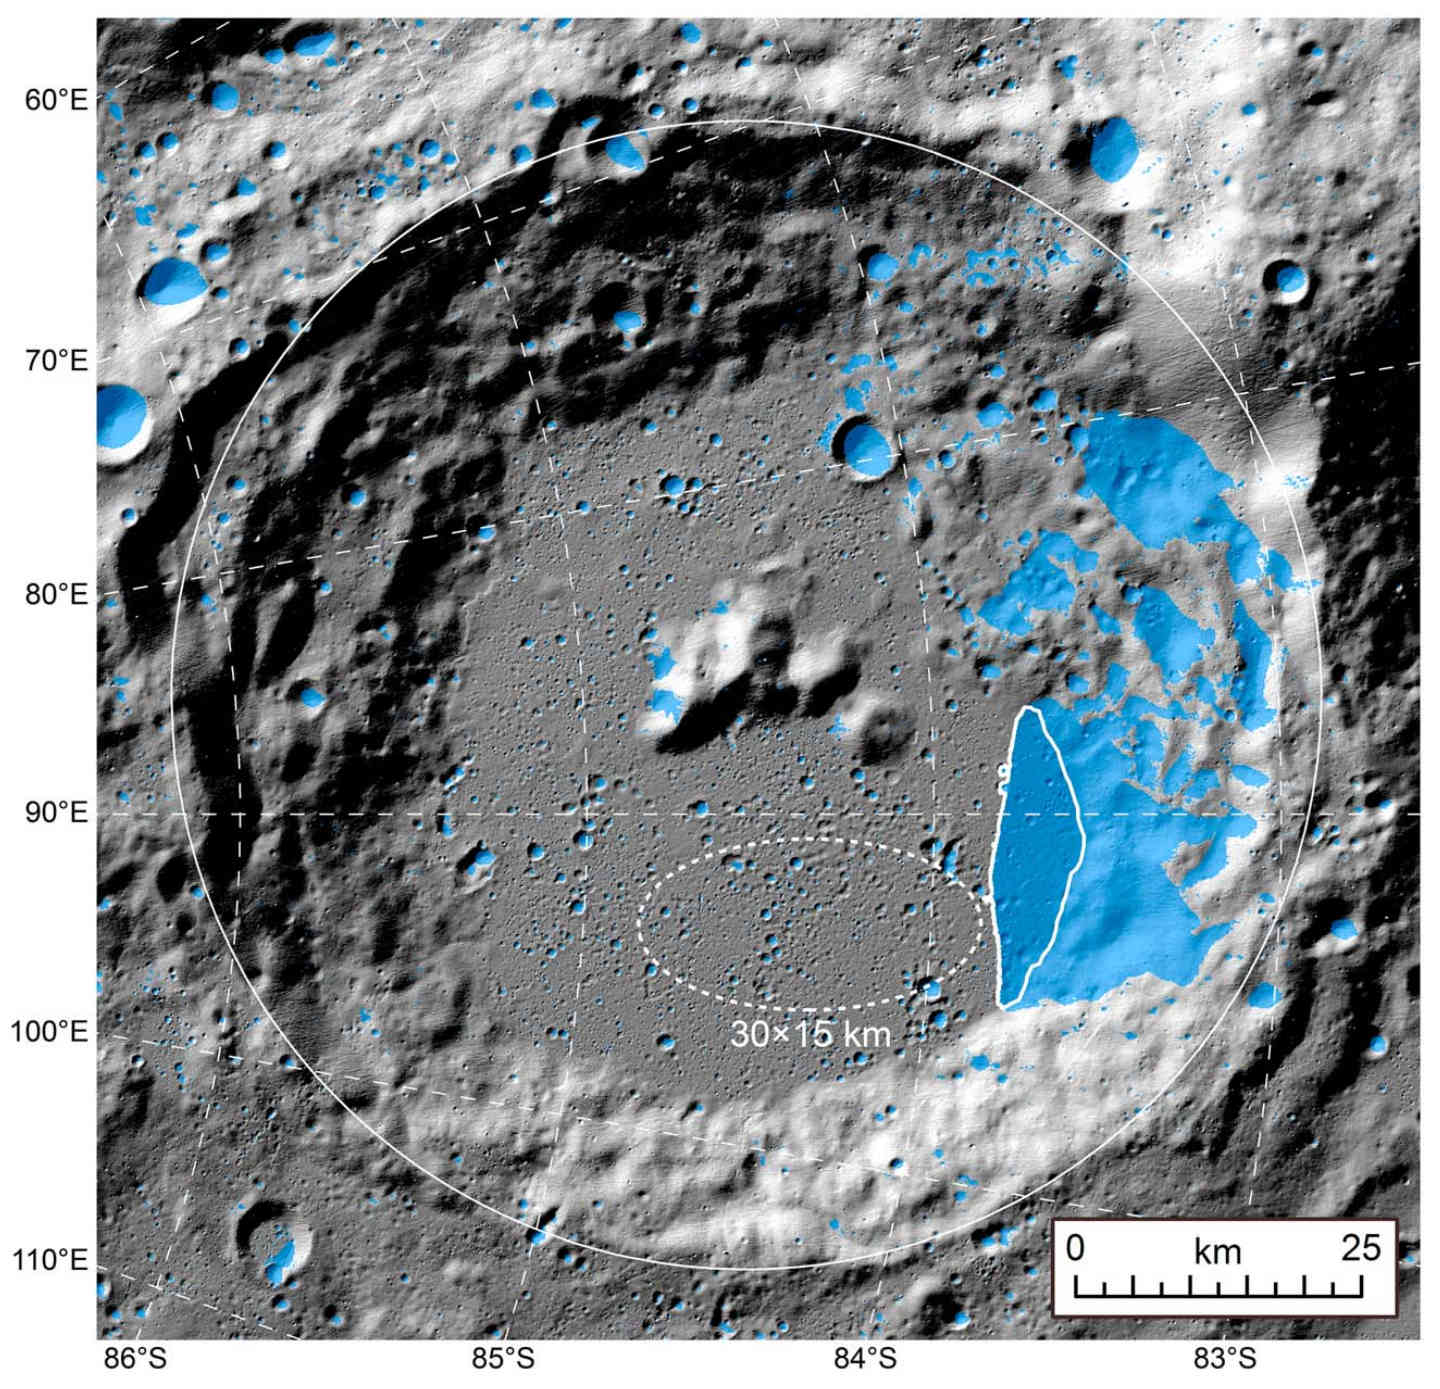 Closeup of Amundsen crater. The blue areas are permanently shadowed regions, with the area enclosed in bold white being a 132 km² flat area. The dashed ellipse represents a 30 x 15 km landing zone. Credit: Qiao et al., 2019, Figure 11.